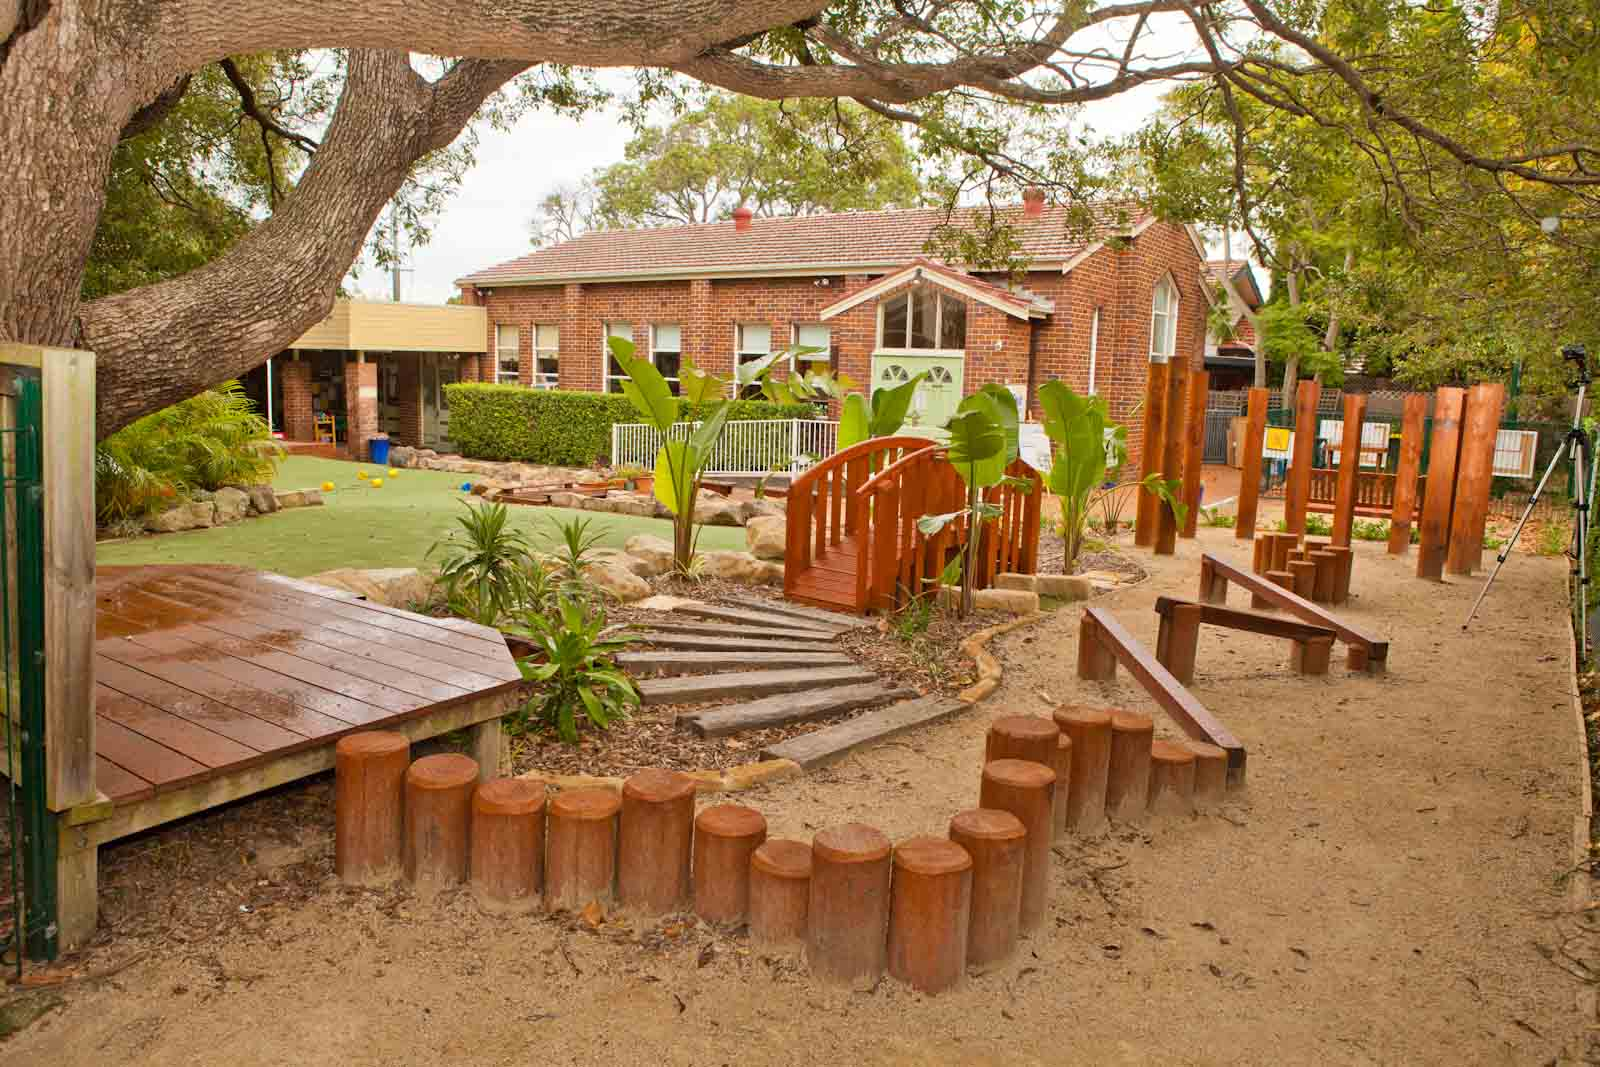 northside-preschool-small-2015-9398-1